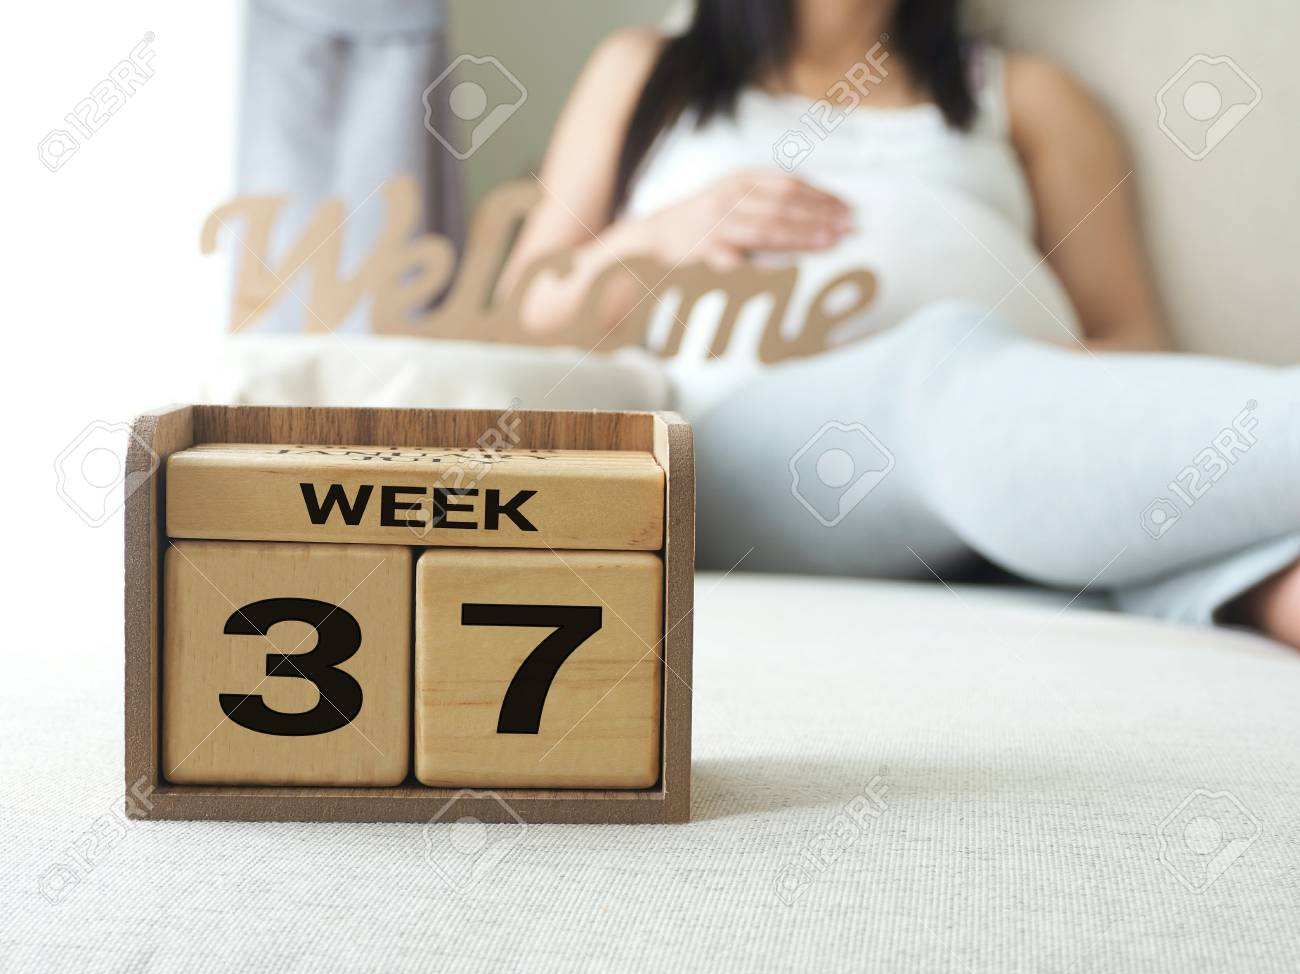 Calendar With Weeks 37 Of Pregnant With Pregnancy Woman Background